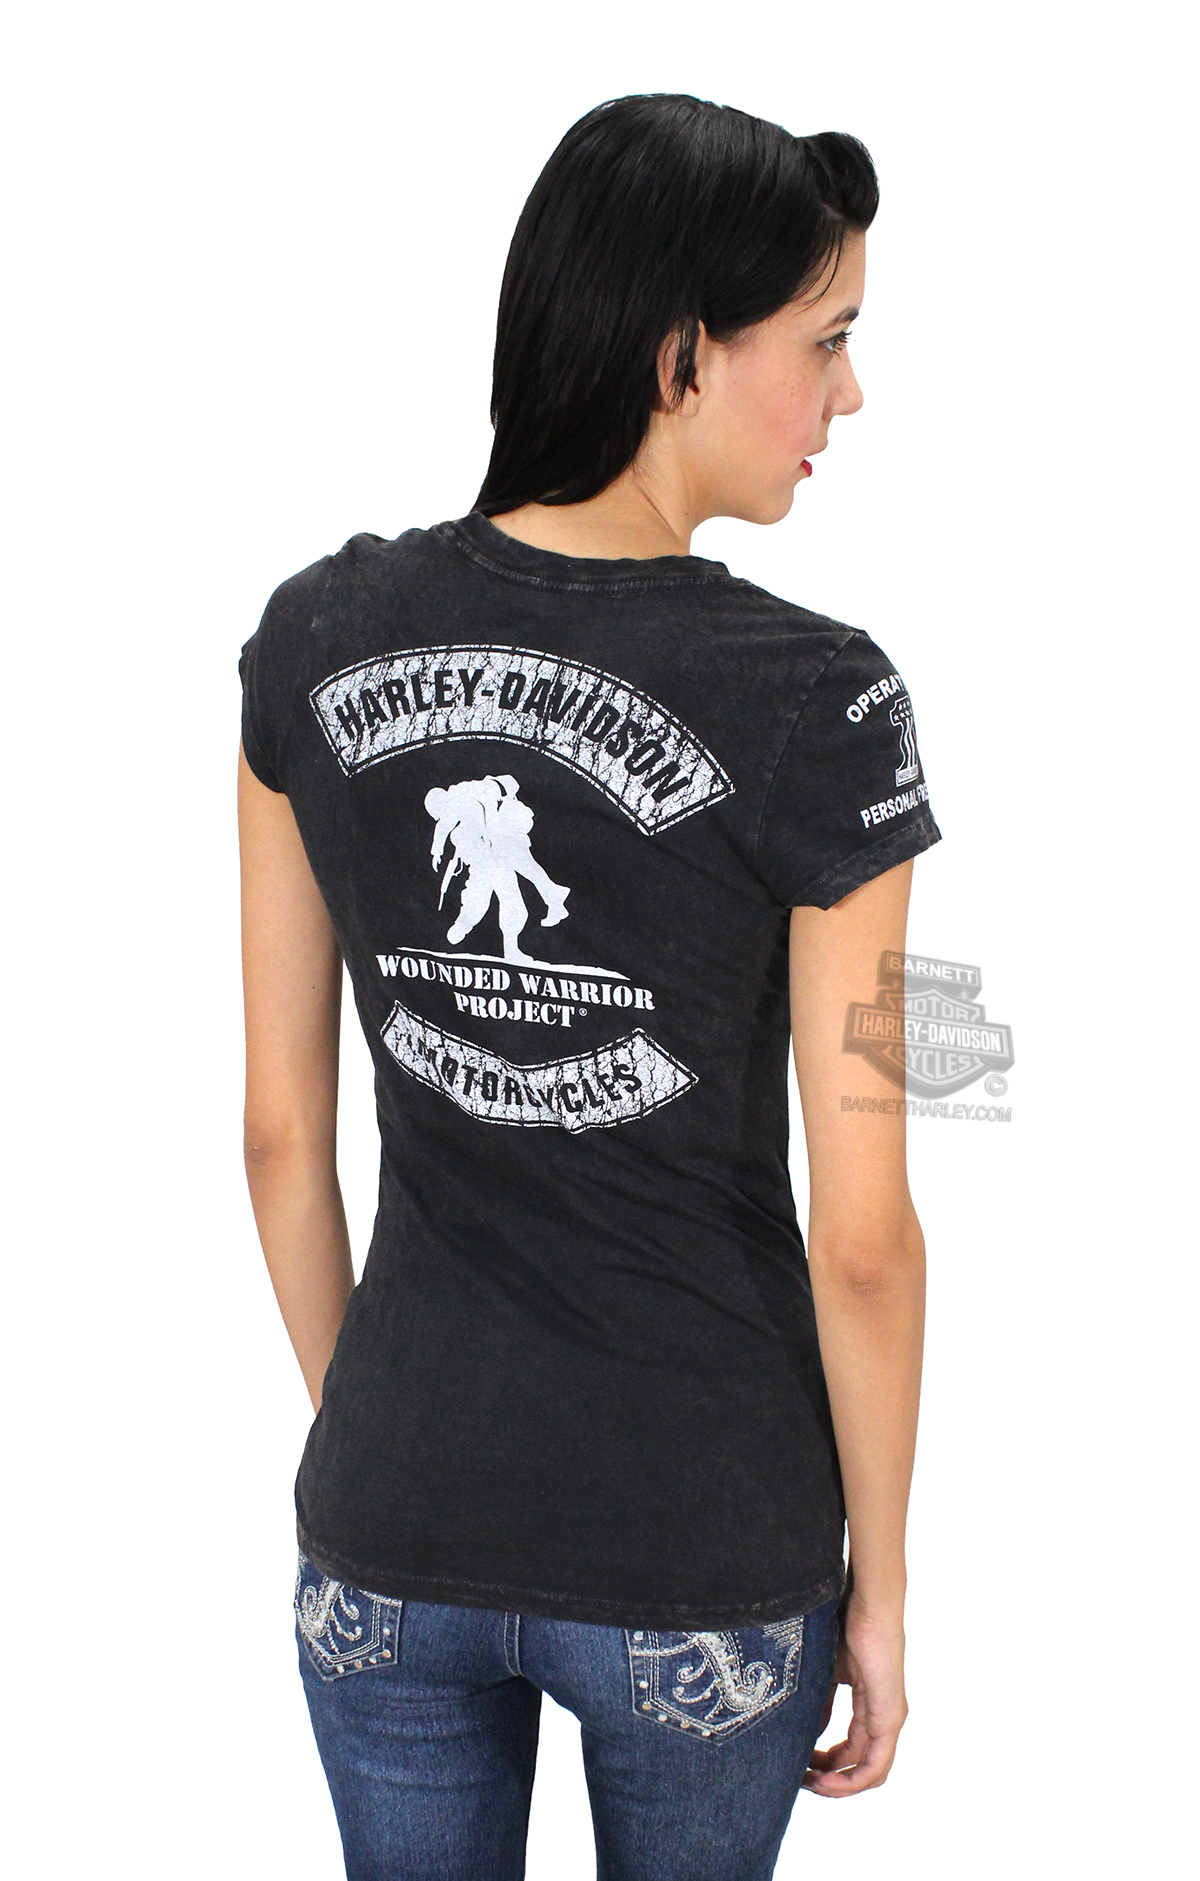 Harley Davidson Wounded Warrior Project T Shirts